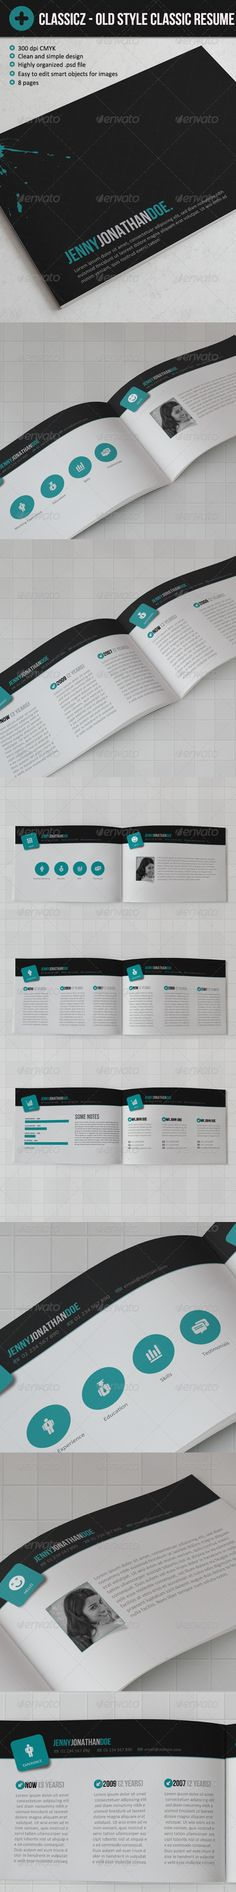 Classiics - Ols Style Resume (book let) - GraphicRiver Item for Sale